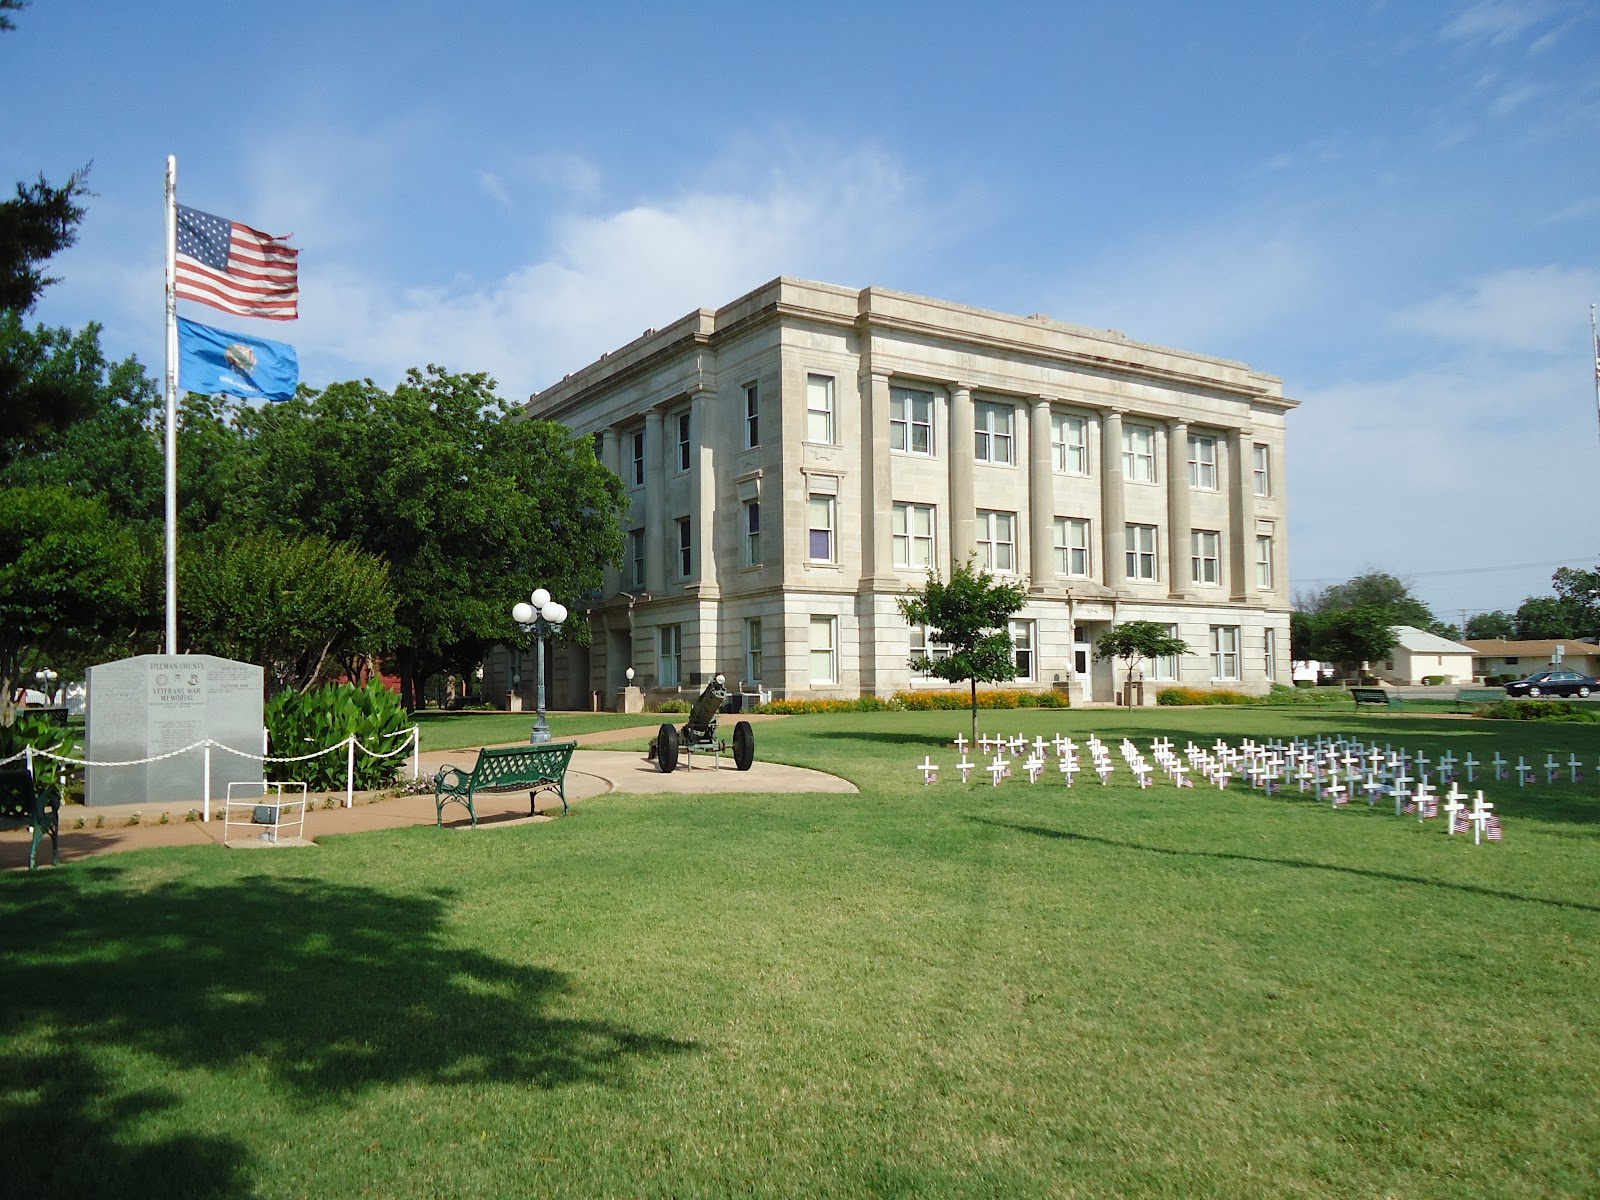 tillman county Compare attorneys in tillman county, oklahoma on justia comprehensive lawyer profiles including fees, education, jurisdictions, awards, publications and social media.